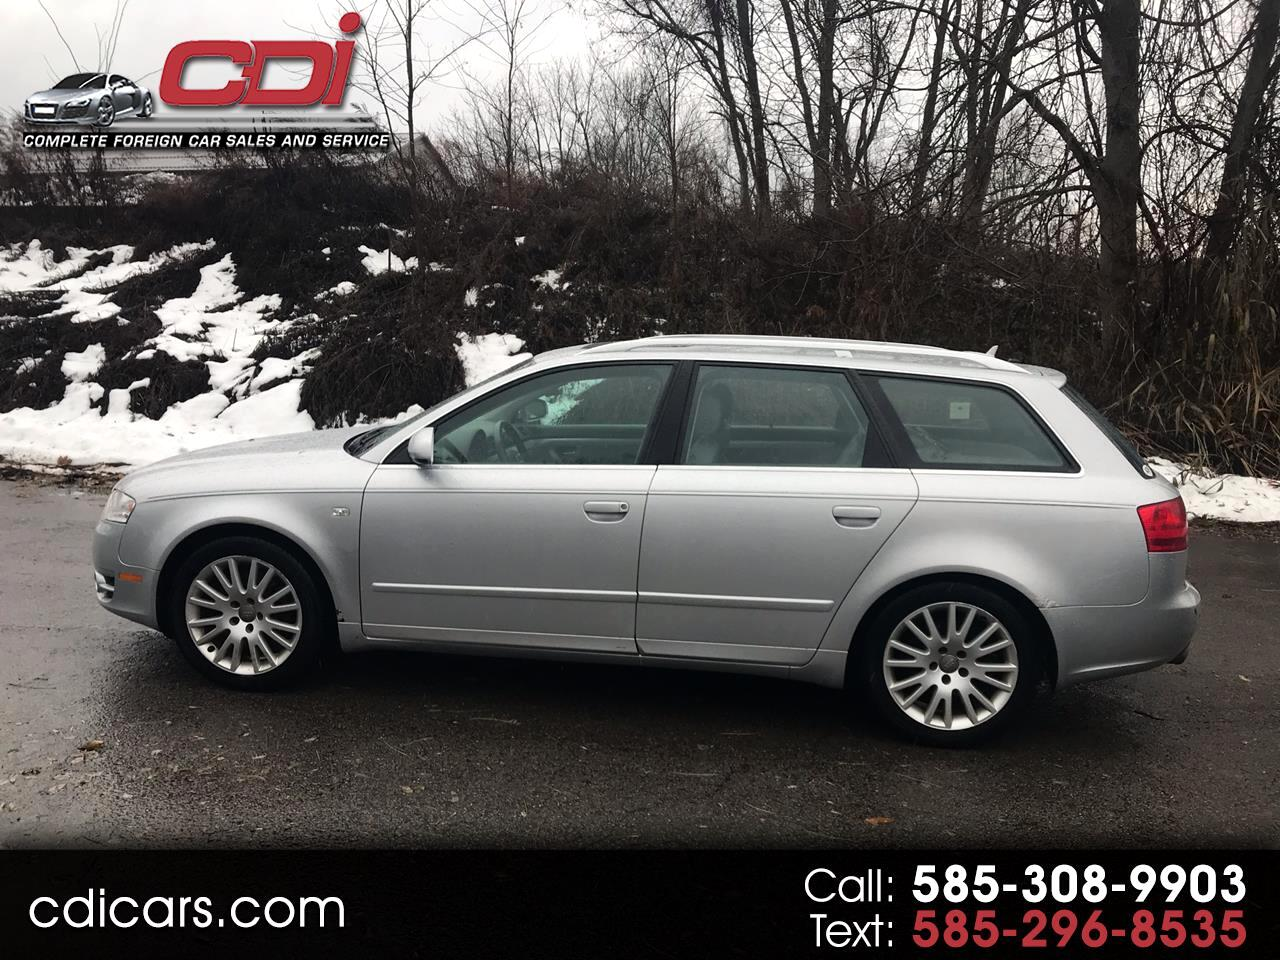 2006 Audi A4 Avant 2.0 T quattro with Tiptronic